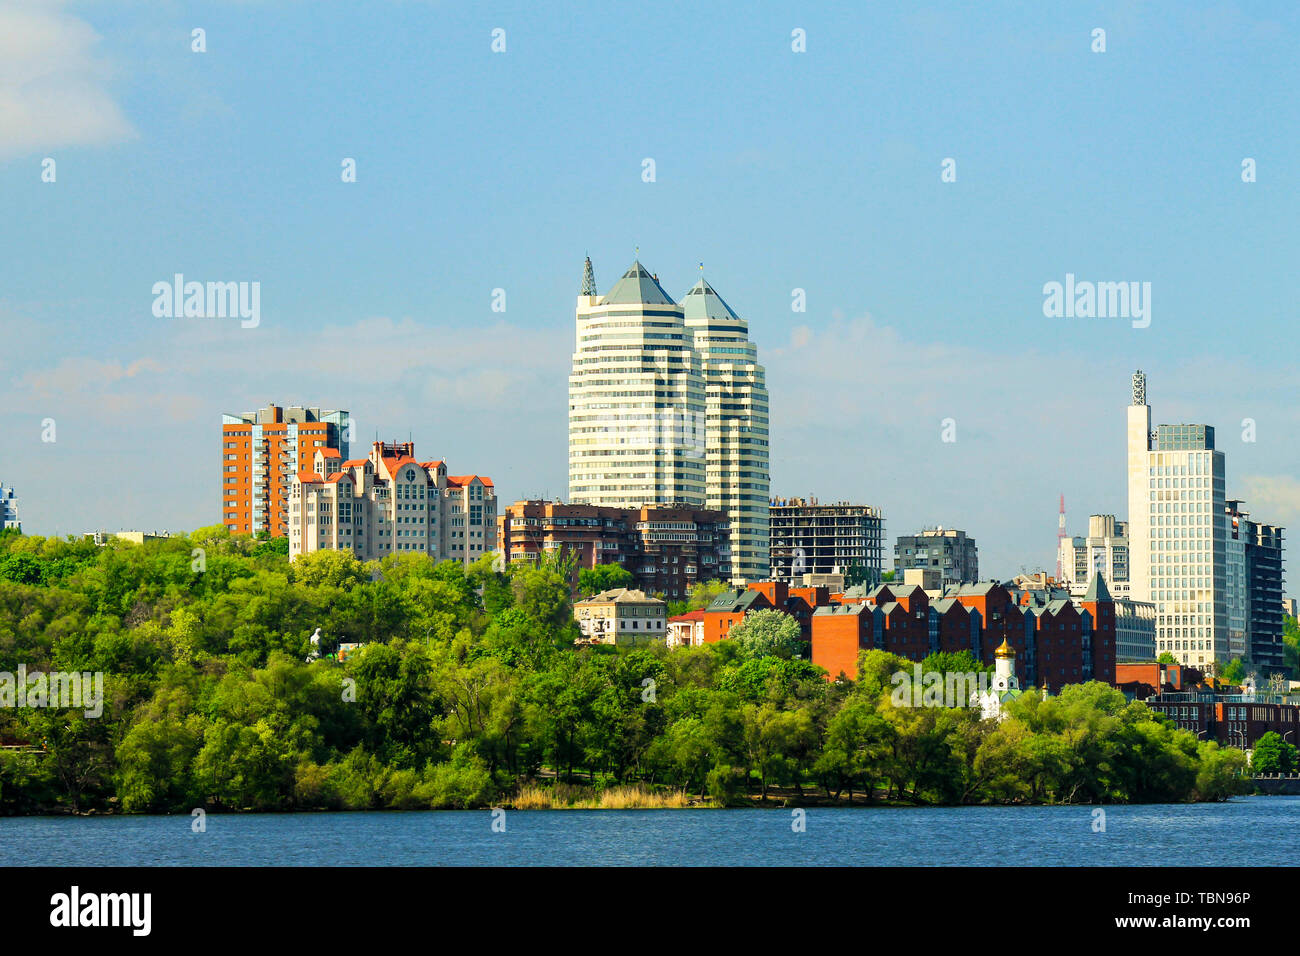 Beautiful towers, buildings and skyscrapers in the River in the early summer morning. Dnepropetrovsk, city Dnipro Ukraine, spring cityscape - Stock Image